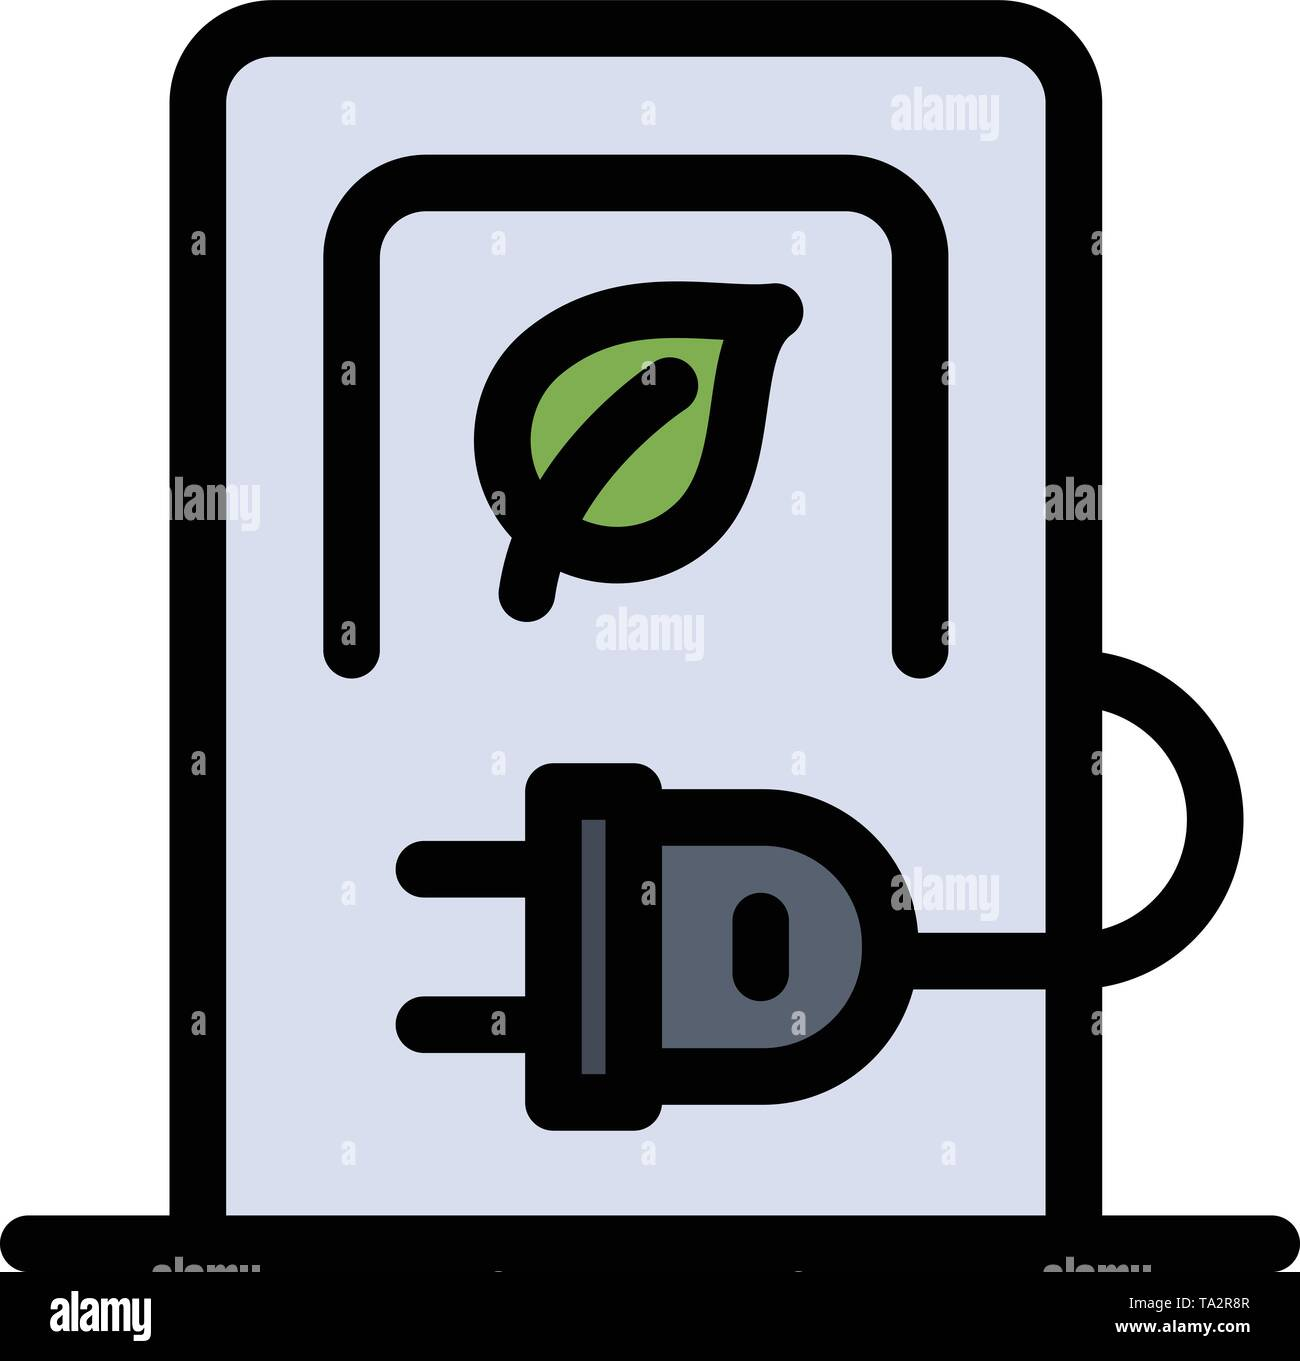 Car, Charging, Electric, Stations, Vehicle  Flat Color Icon. Vector icon banner Template - Stock Image